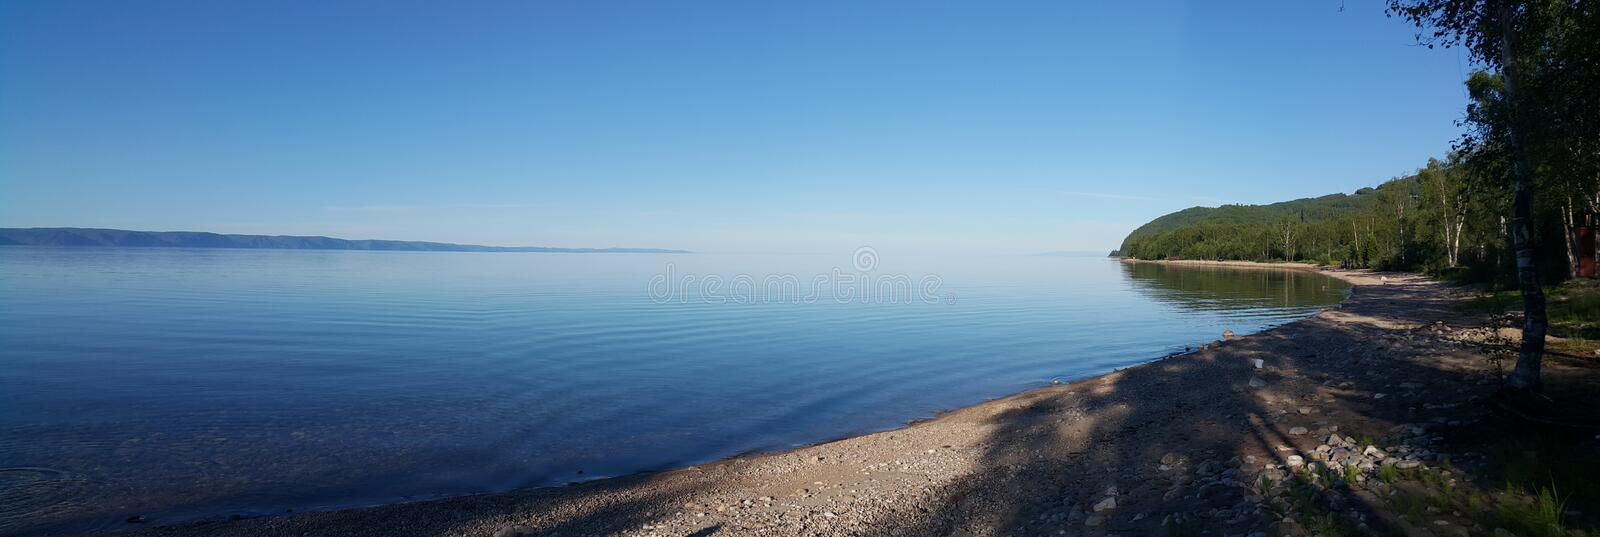 Panorama do Lago Baikal foto de stock